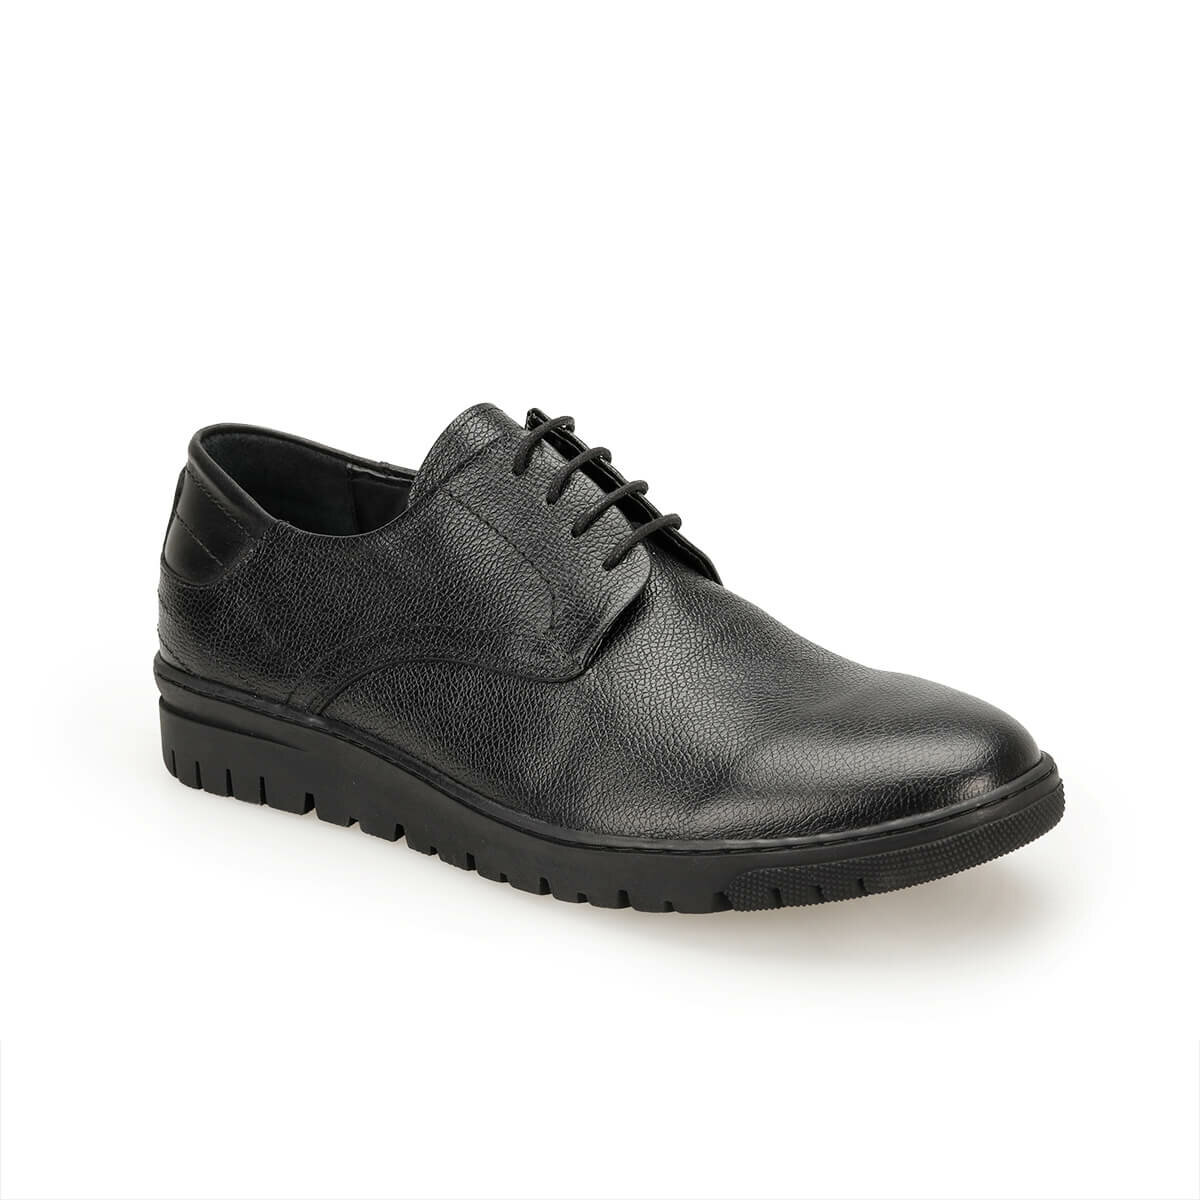 FLO 3389 Black Male Shoes Flogart